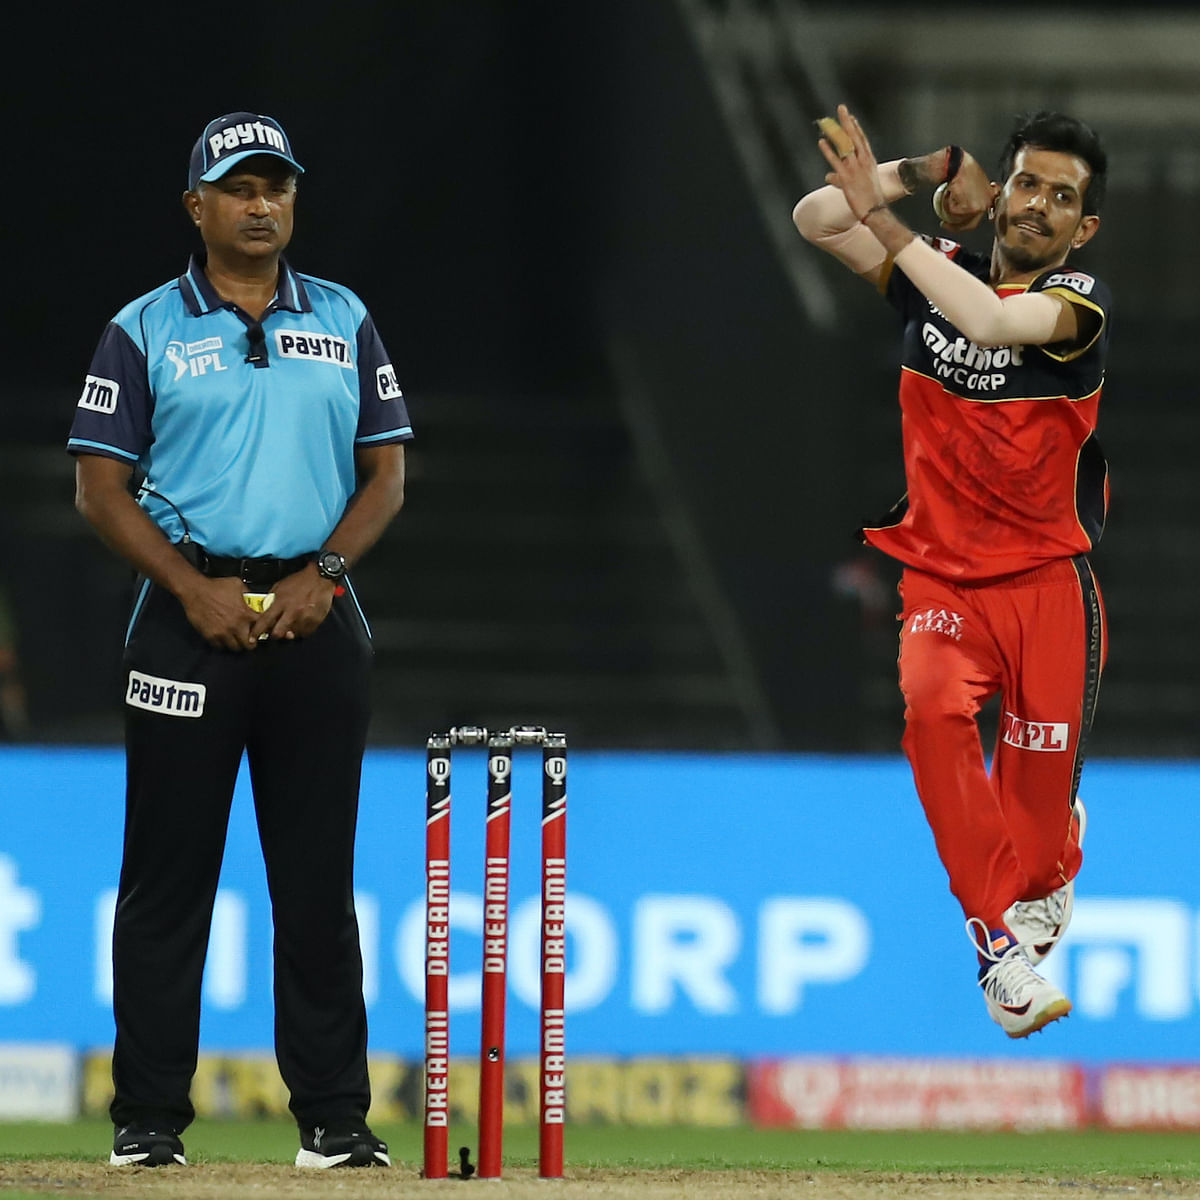 IPL 2020: Which team tops the points table as of October 16, 2020?